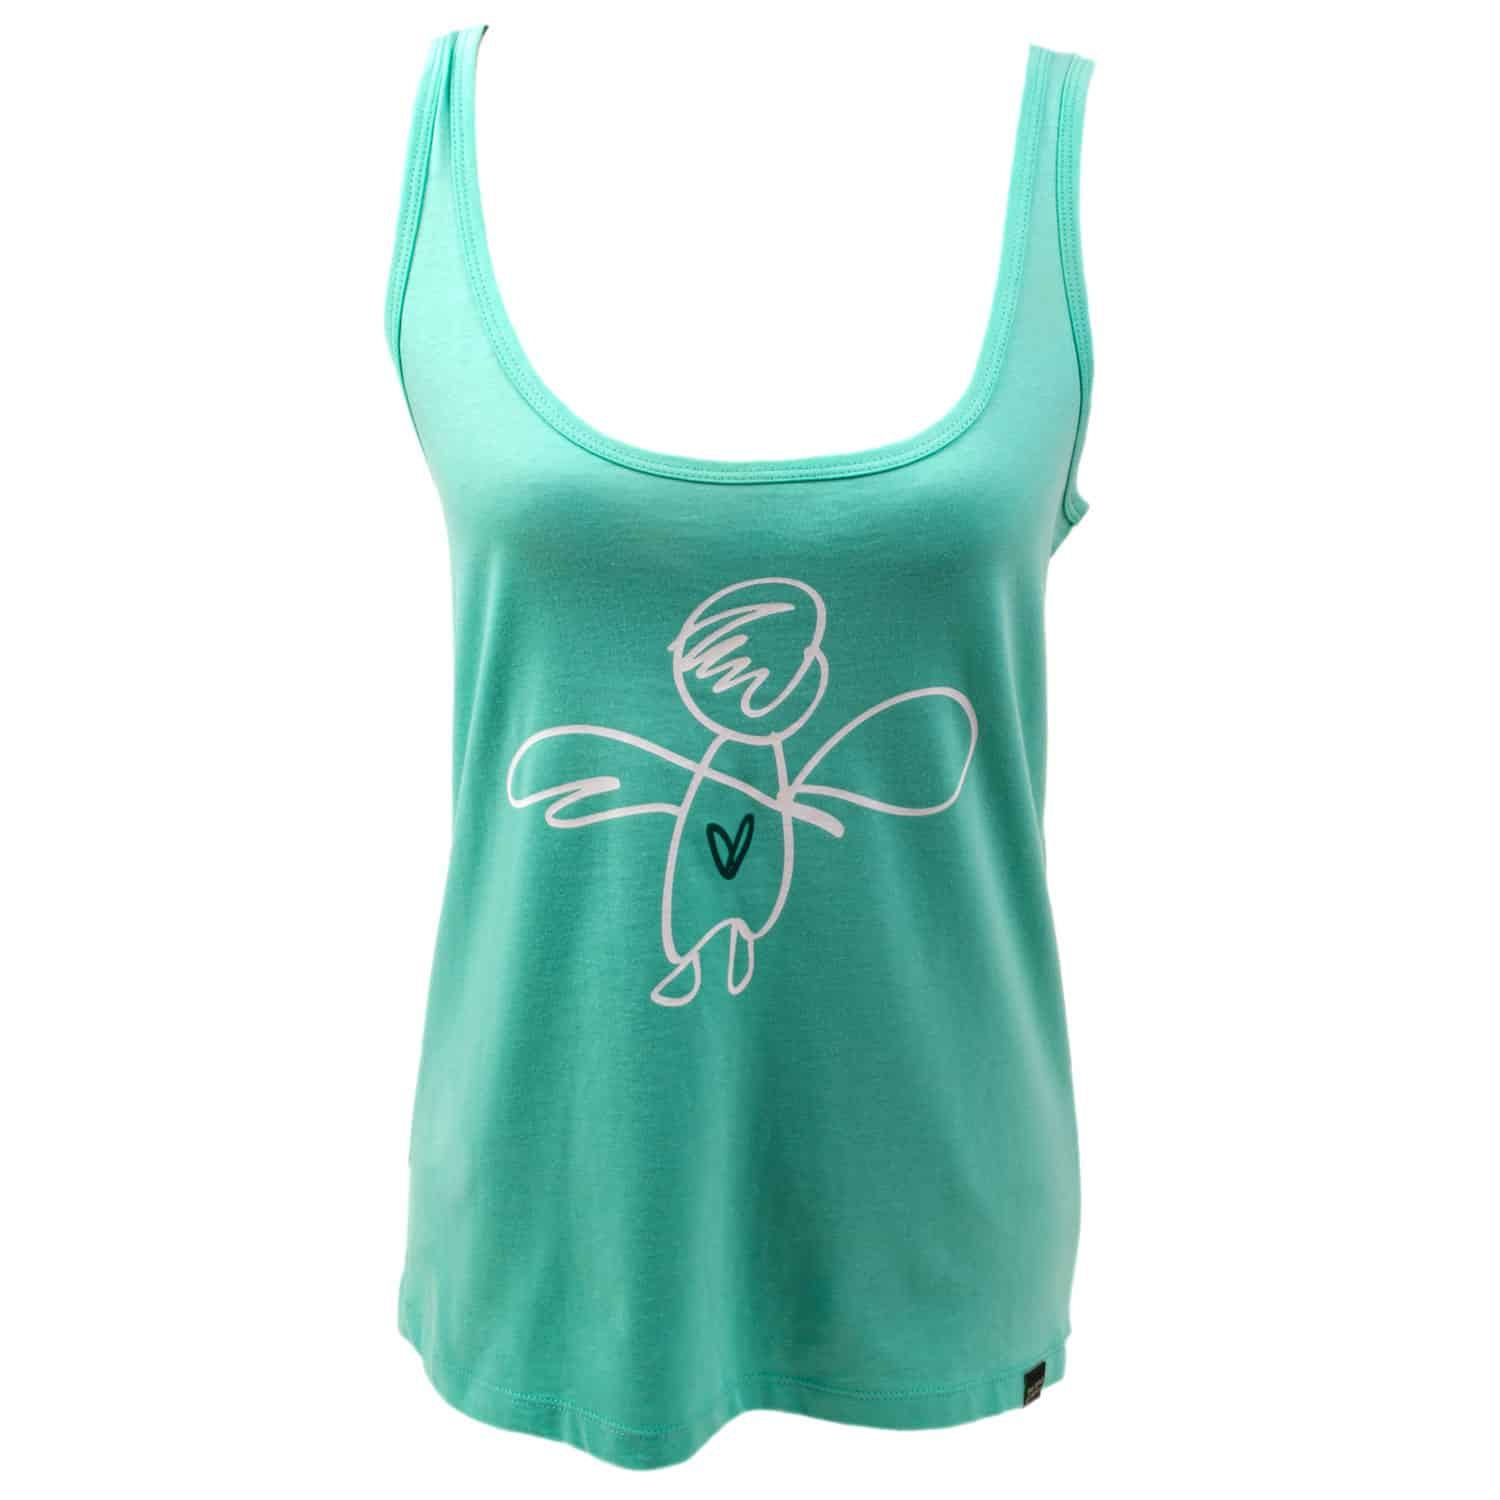 Tanktop - eco cotton - silk screen design - Give your love wings